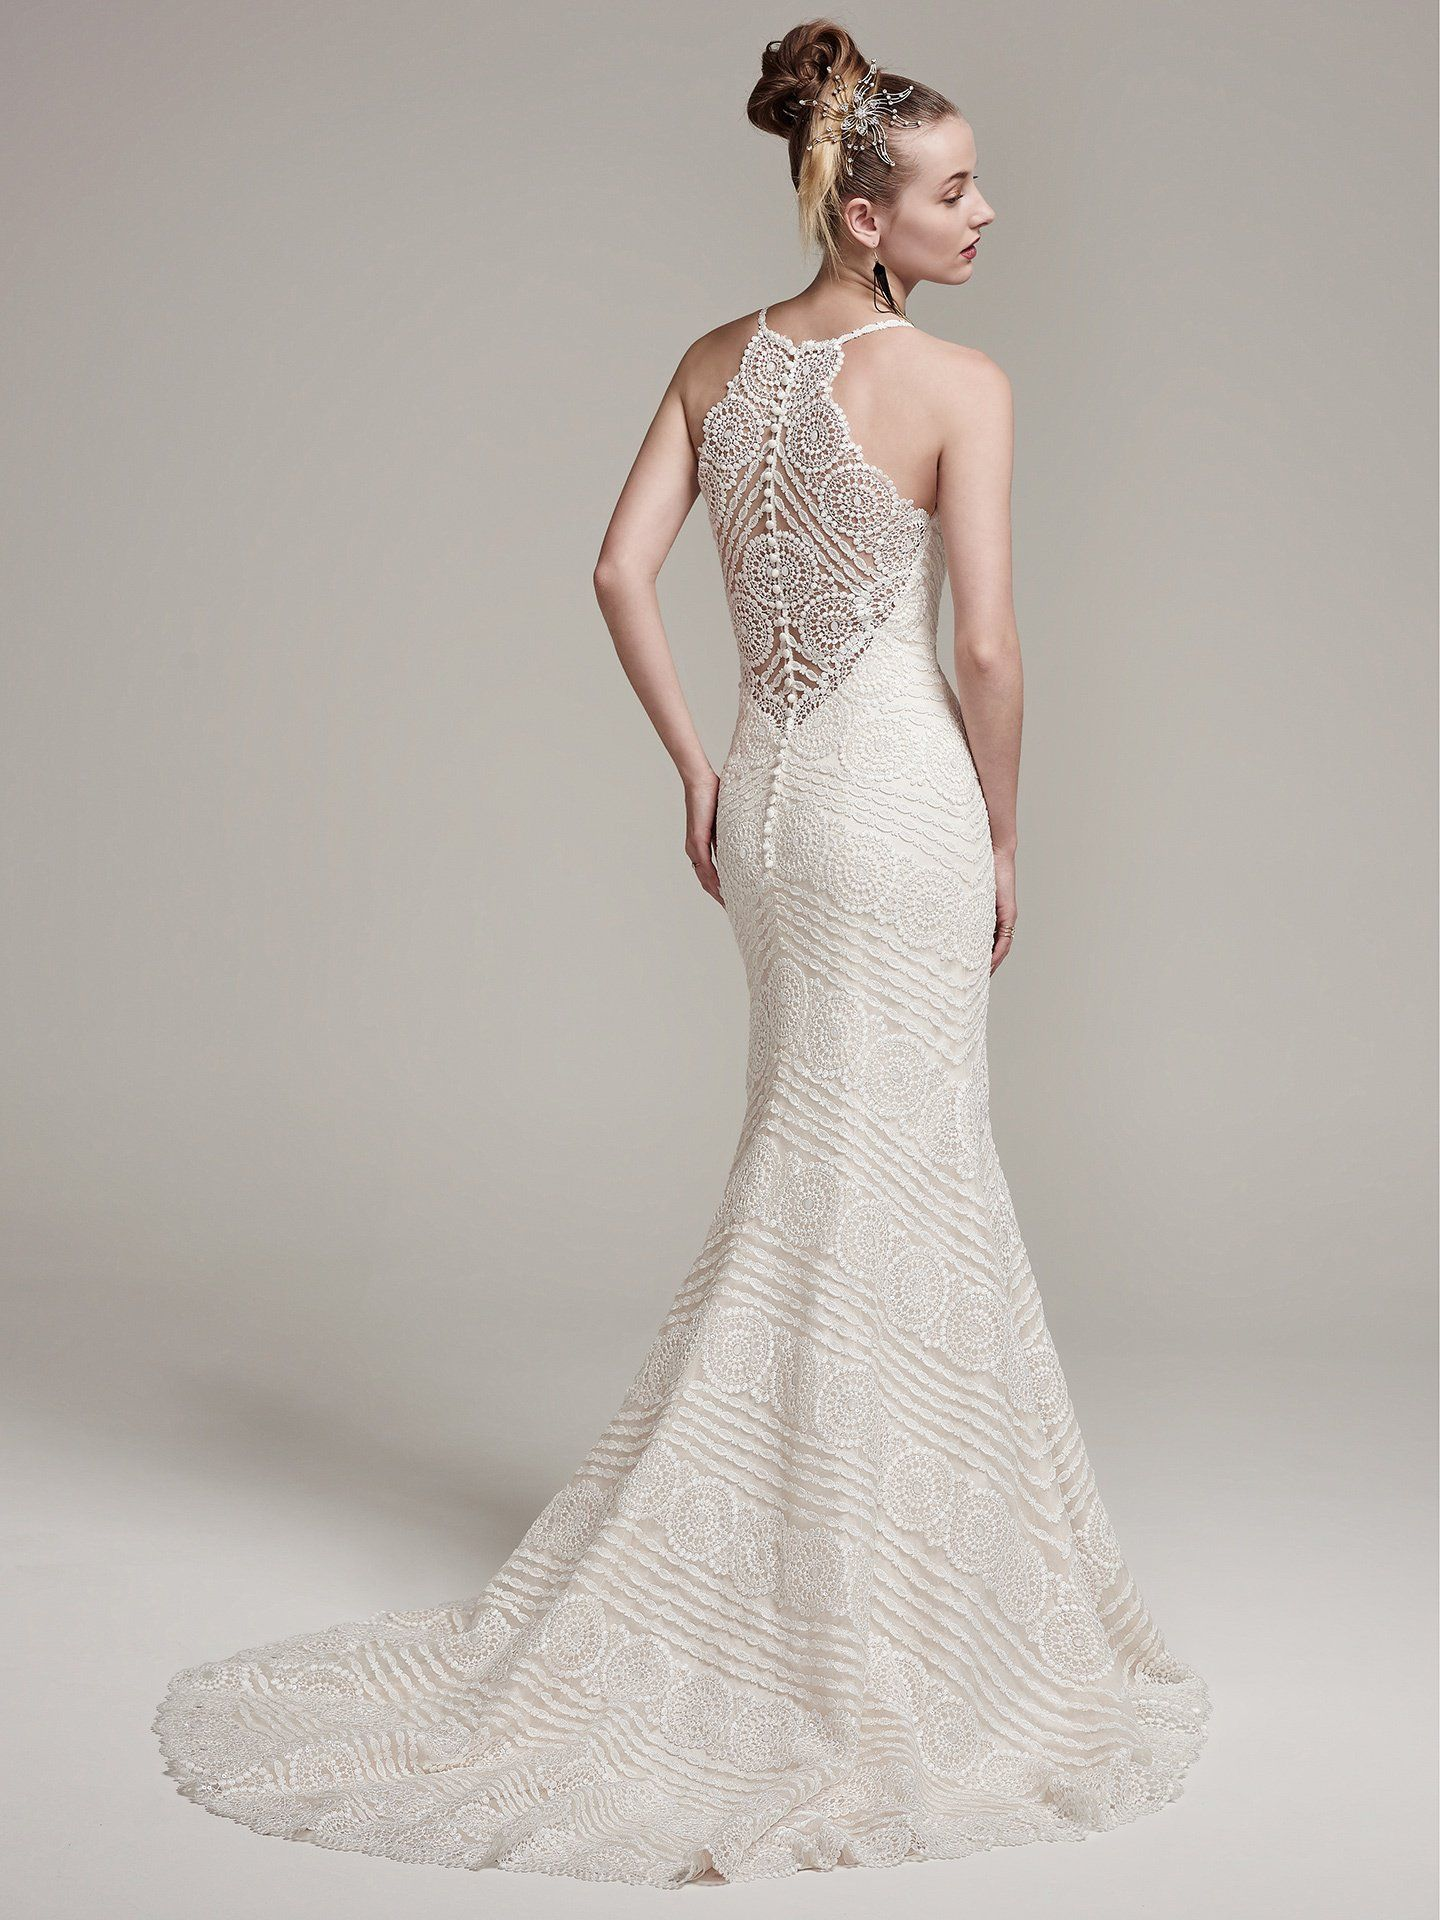 Maggie sottero wedding dresses wedding dress romantic and weddings bexley by sotteroandmidgley modern and romantic this lace sheath wedding dress with spaghetti straps ombrellifo Image collections